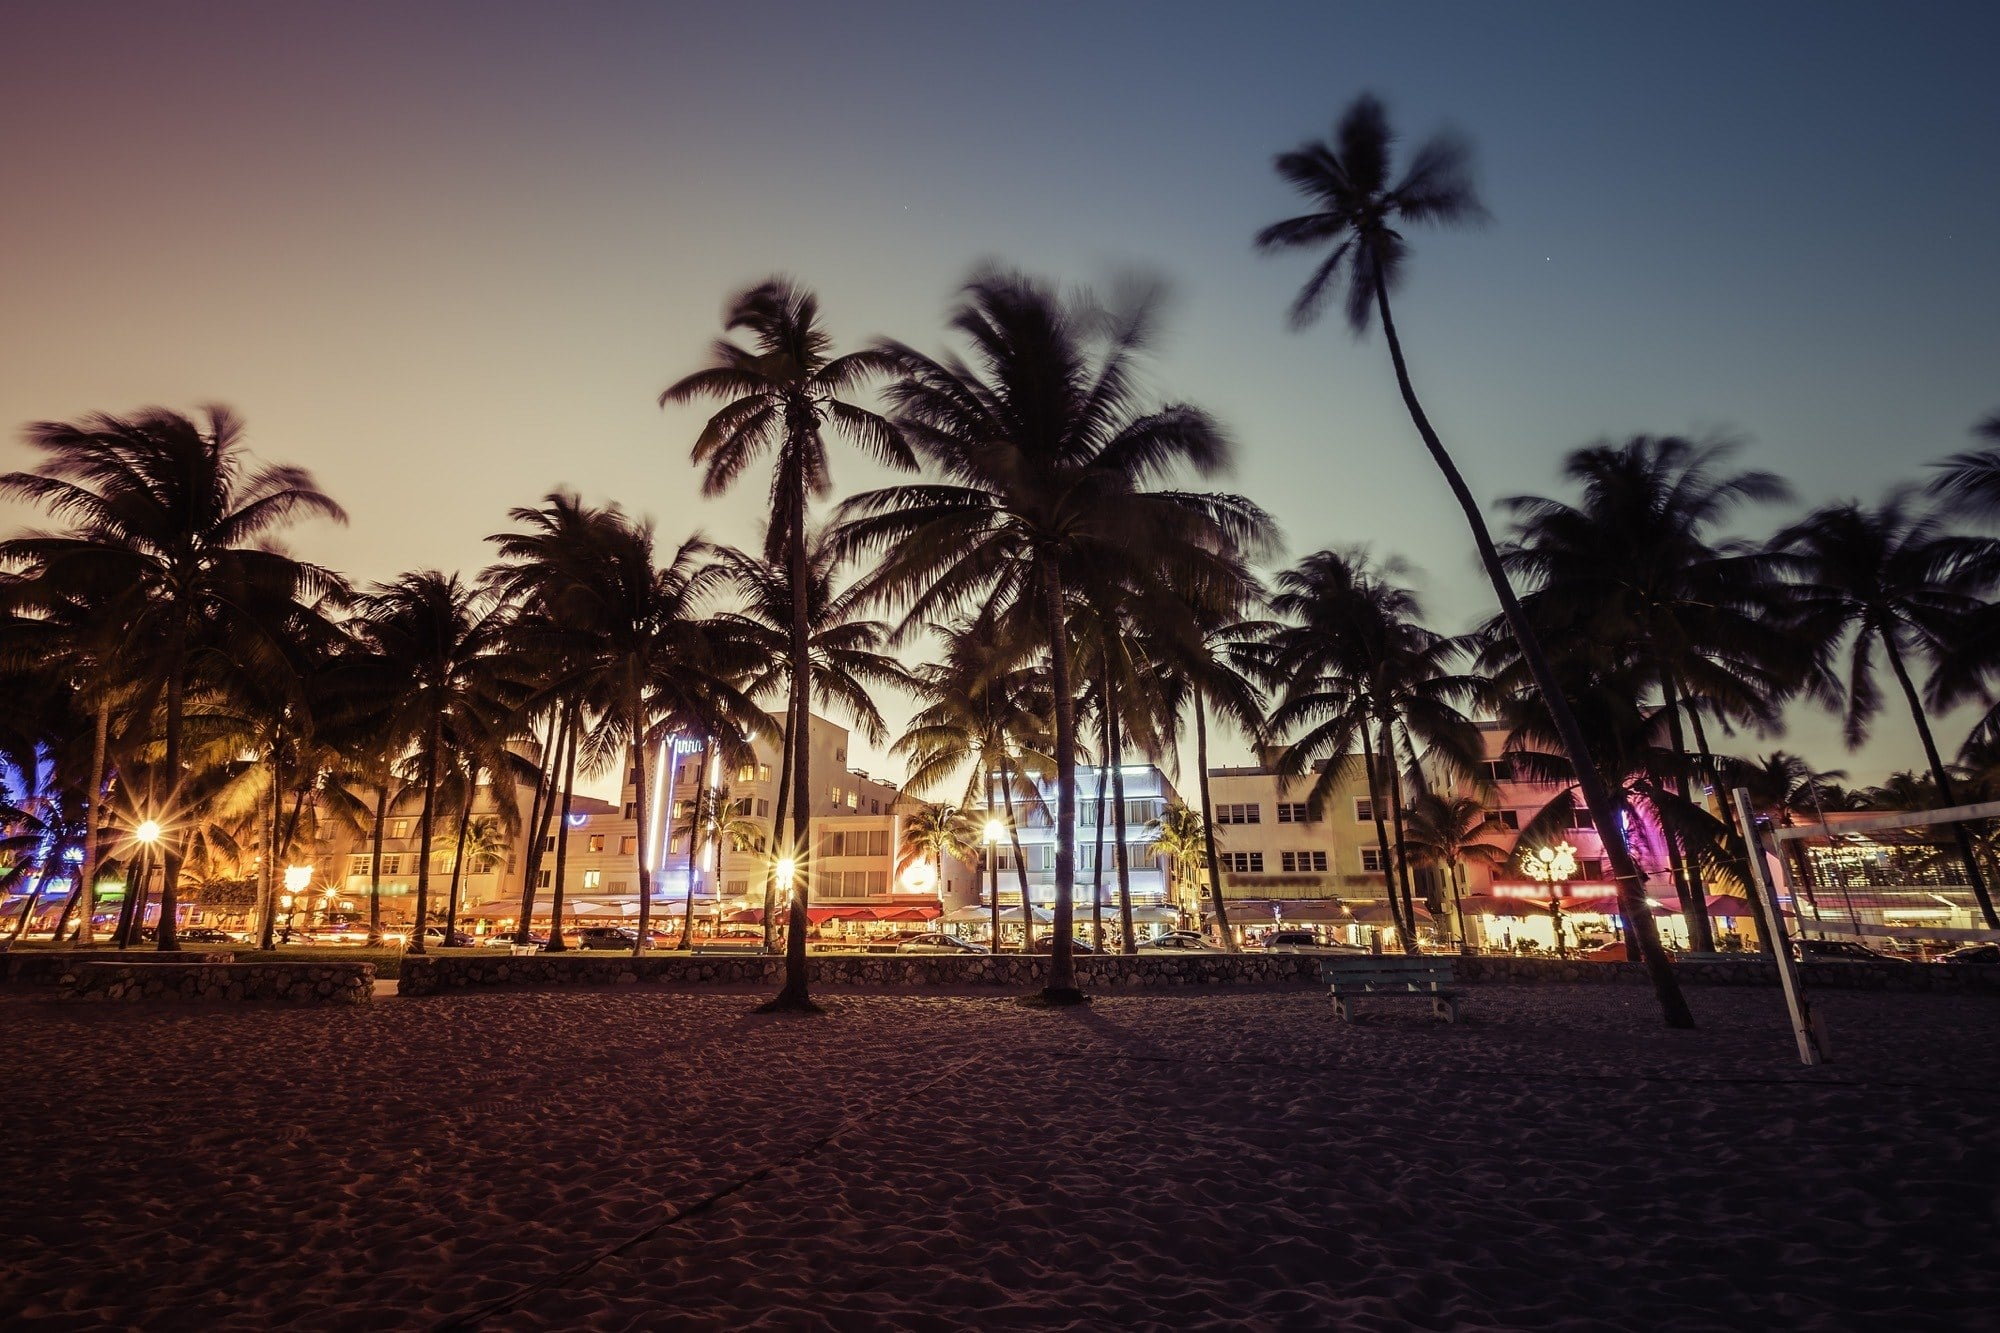 View of Fort Lauderdale, Florida near The Exchange Lofts